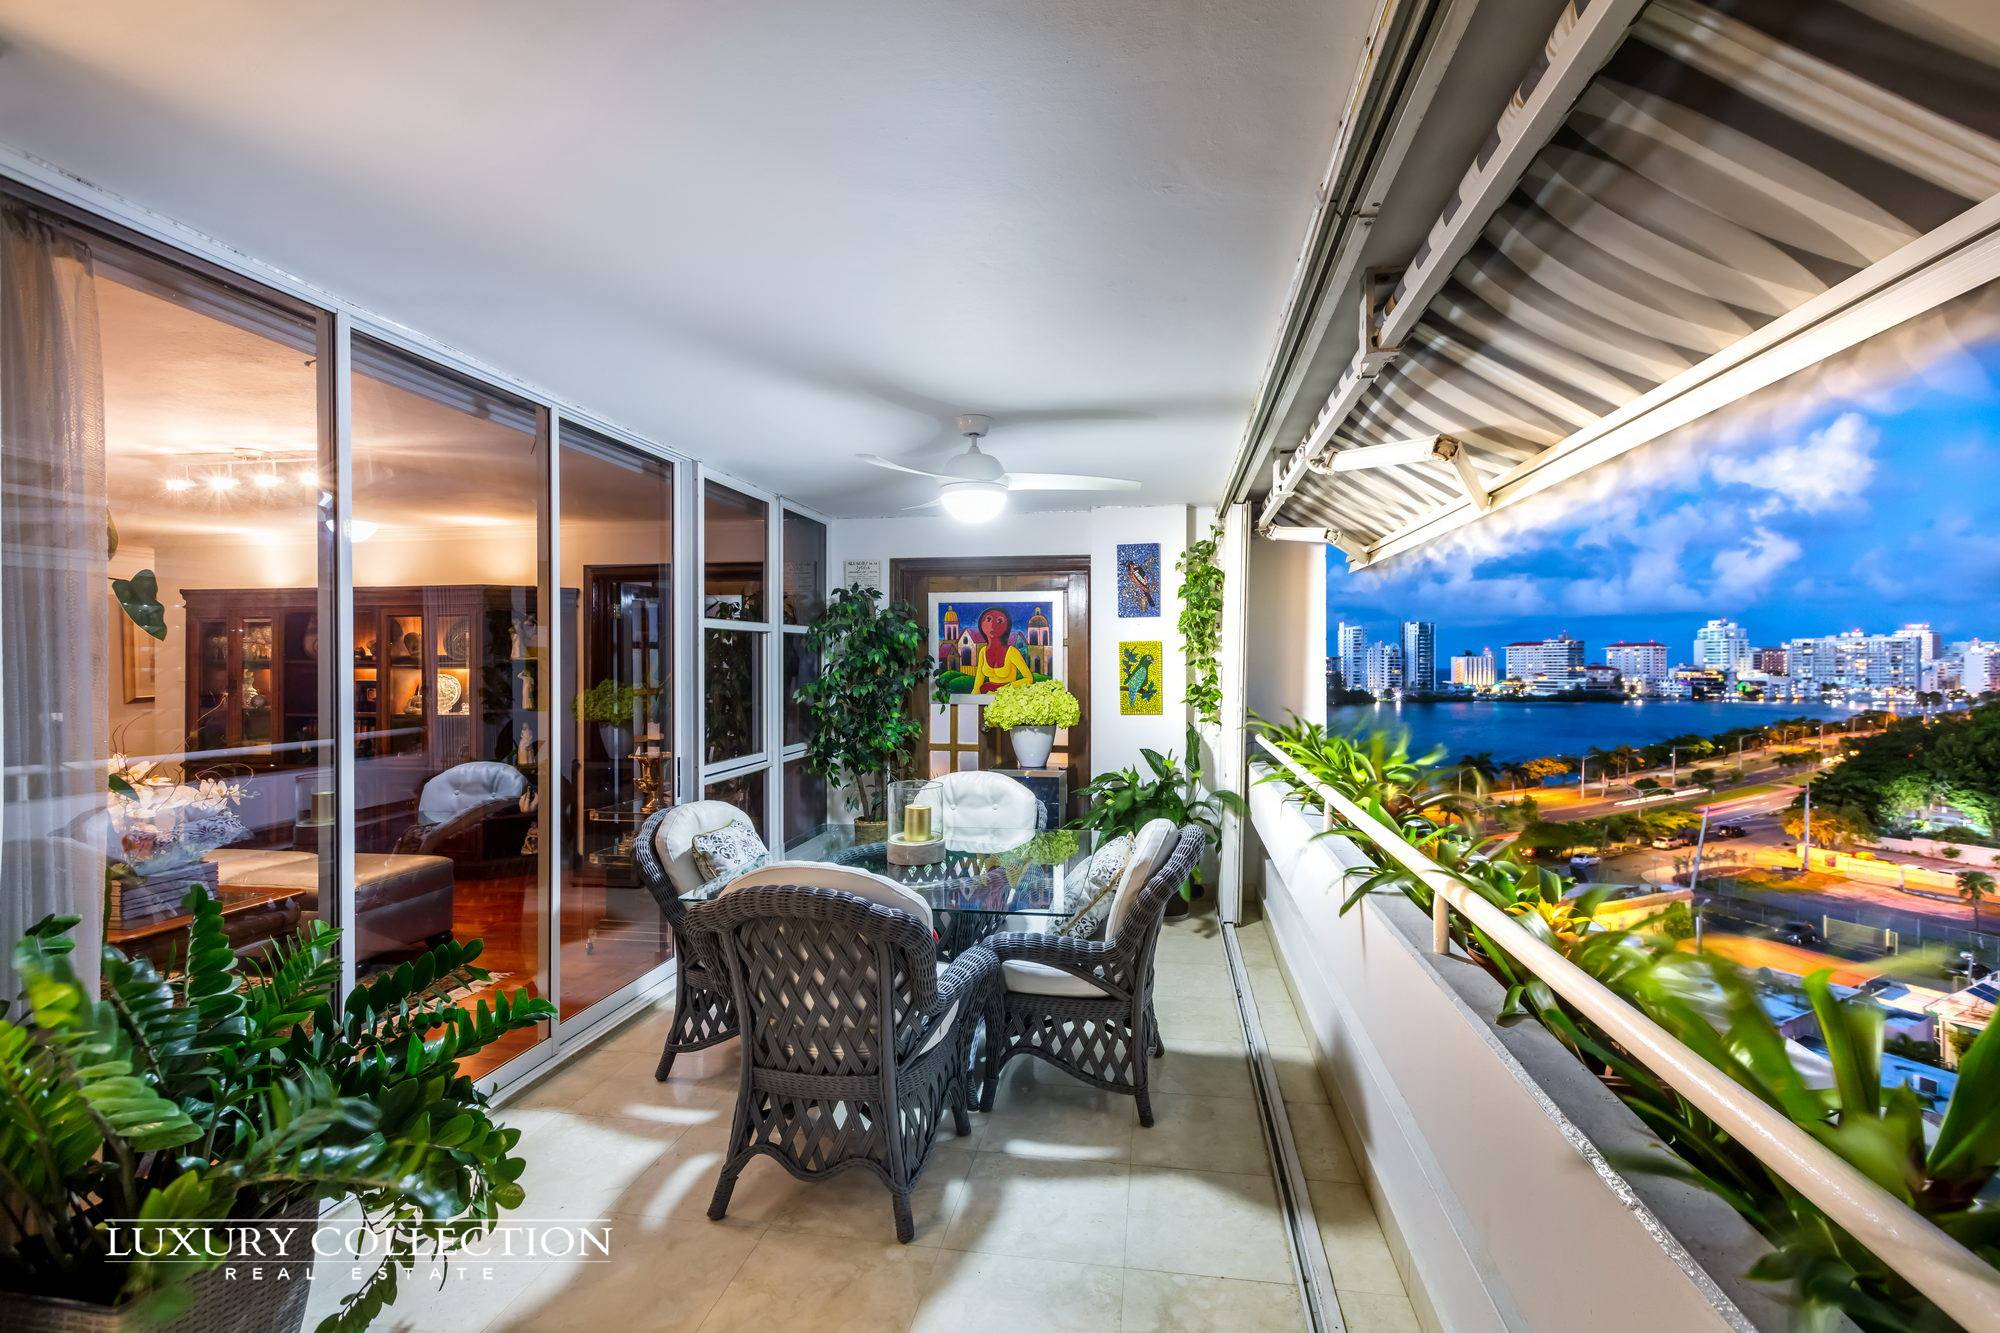 Waterview Mansions Miramar for sale provides a breathtaking statement of simple elegance and tranquility with stunning ocean and lagoon views.